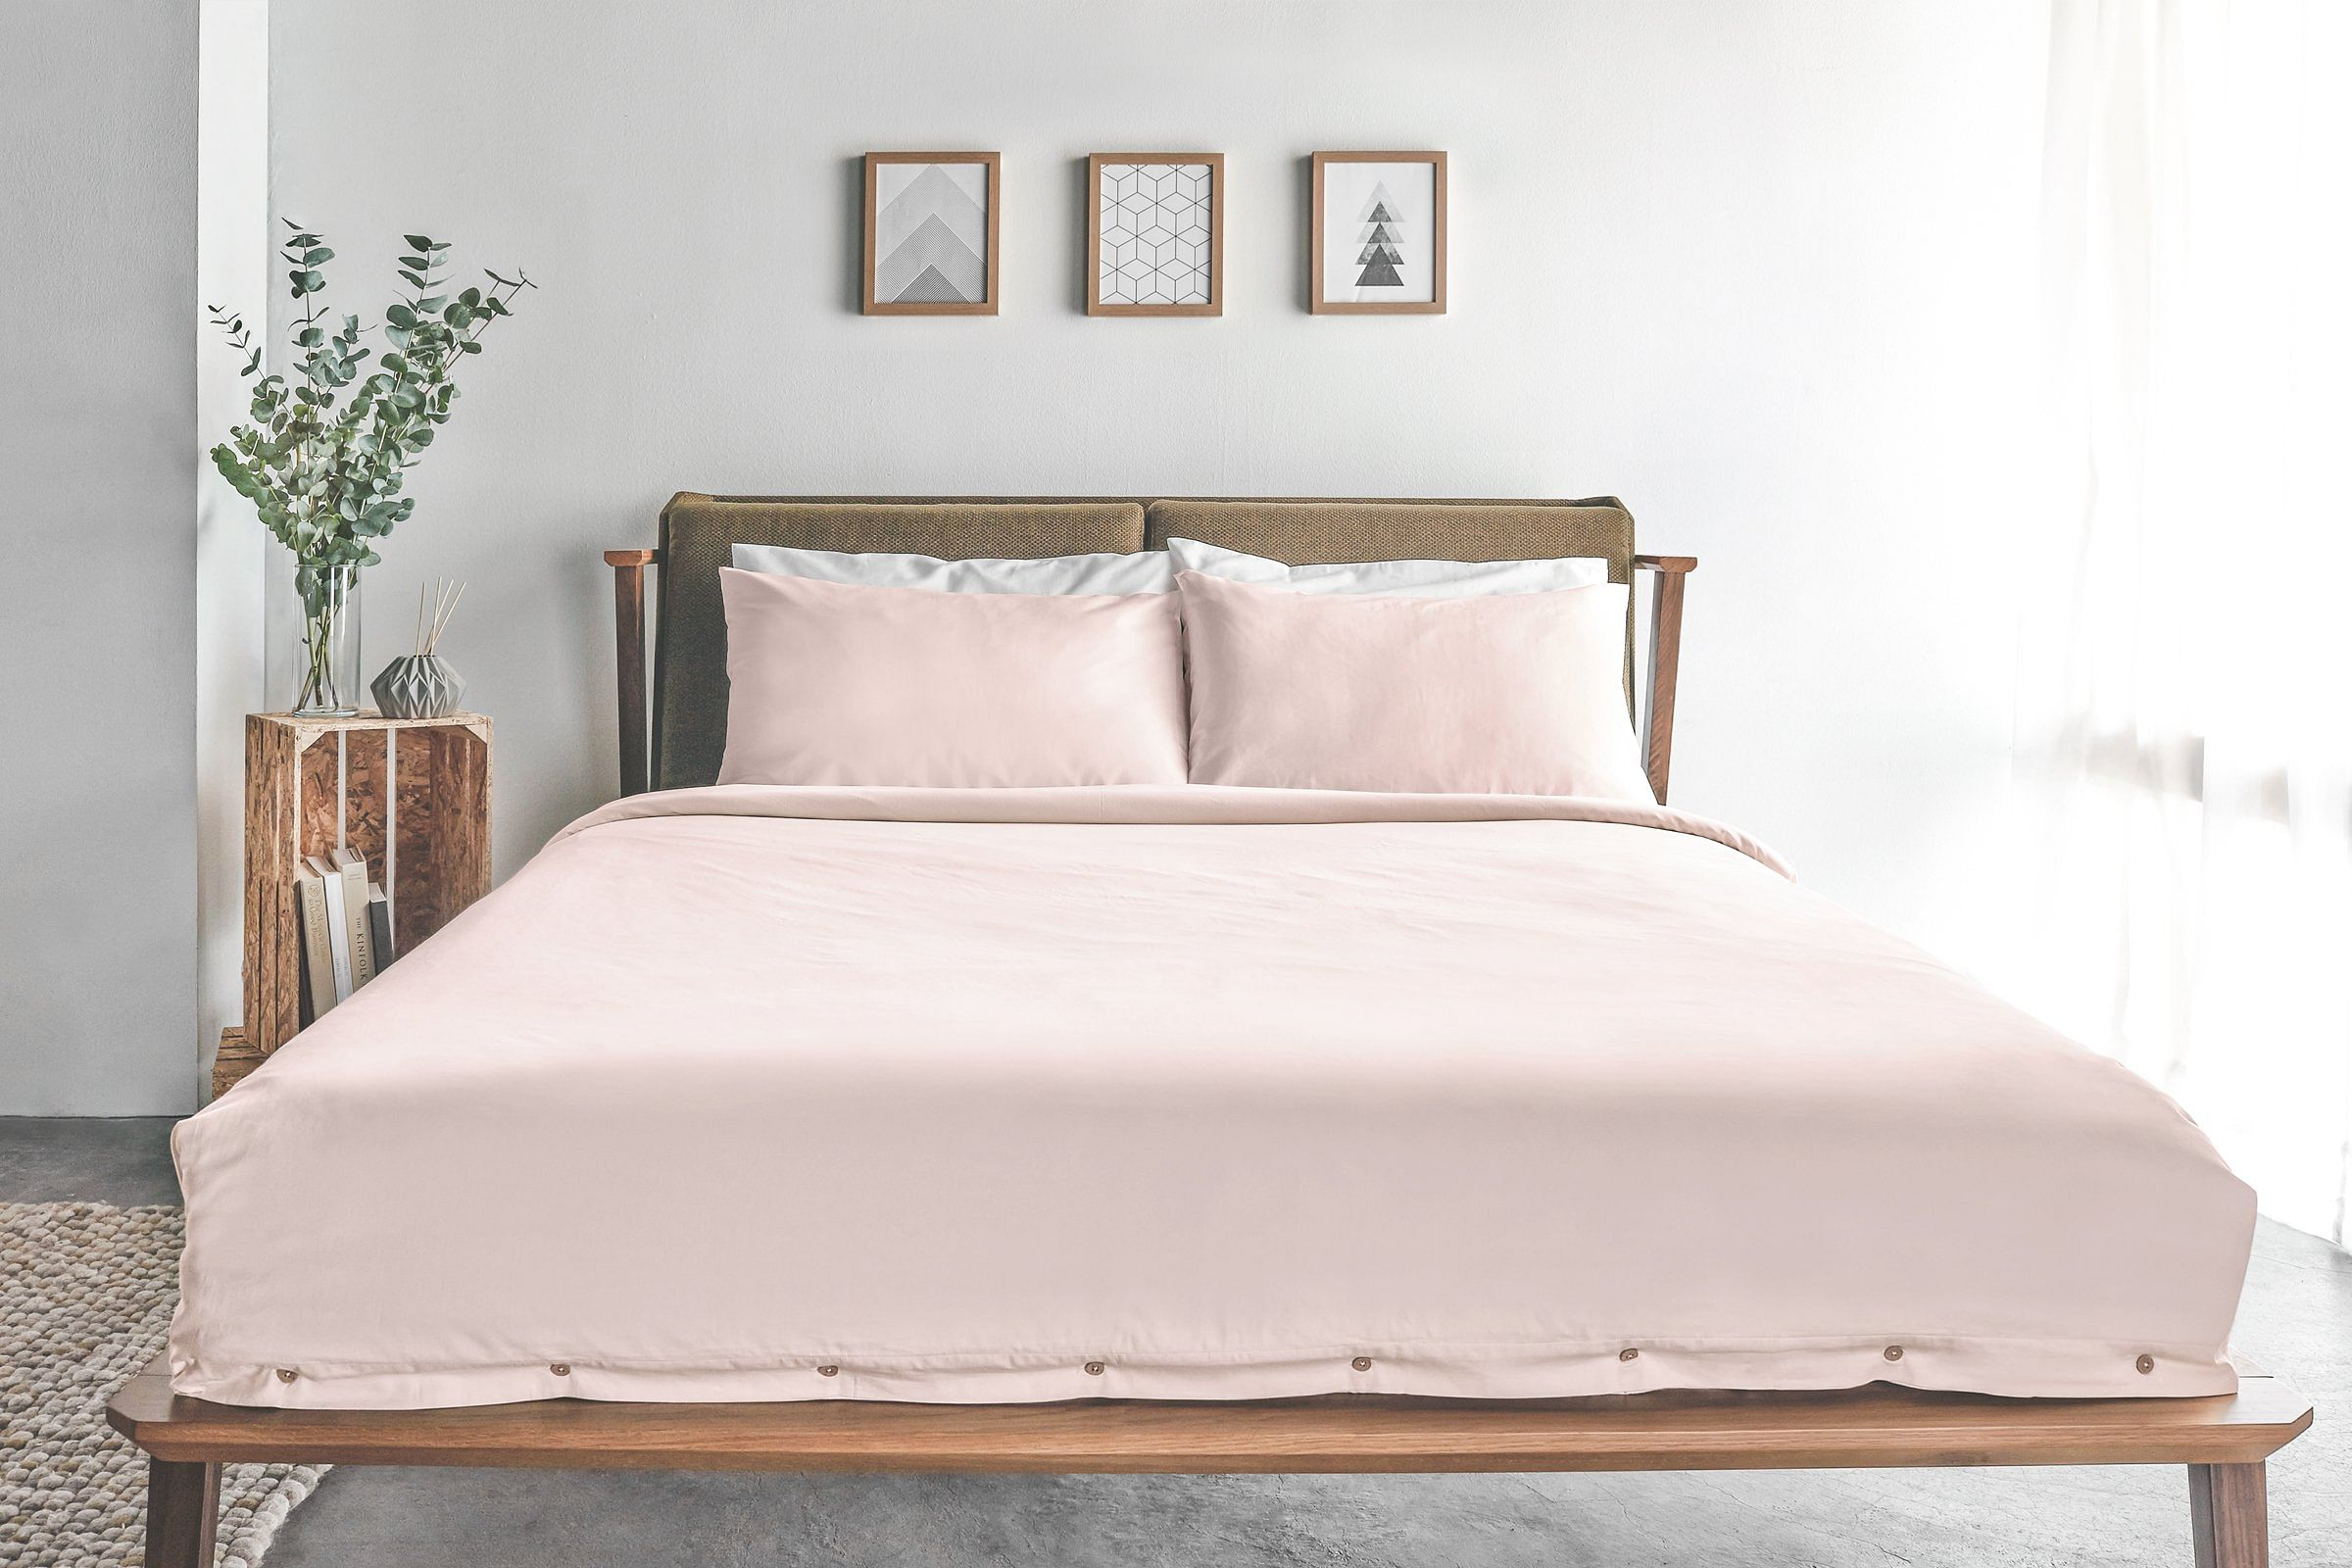 dulux spiced honey with pastel pink, sojao singapore